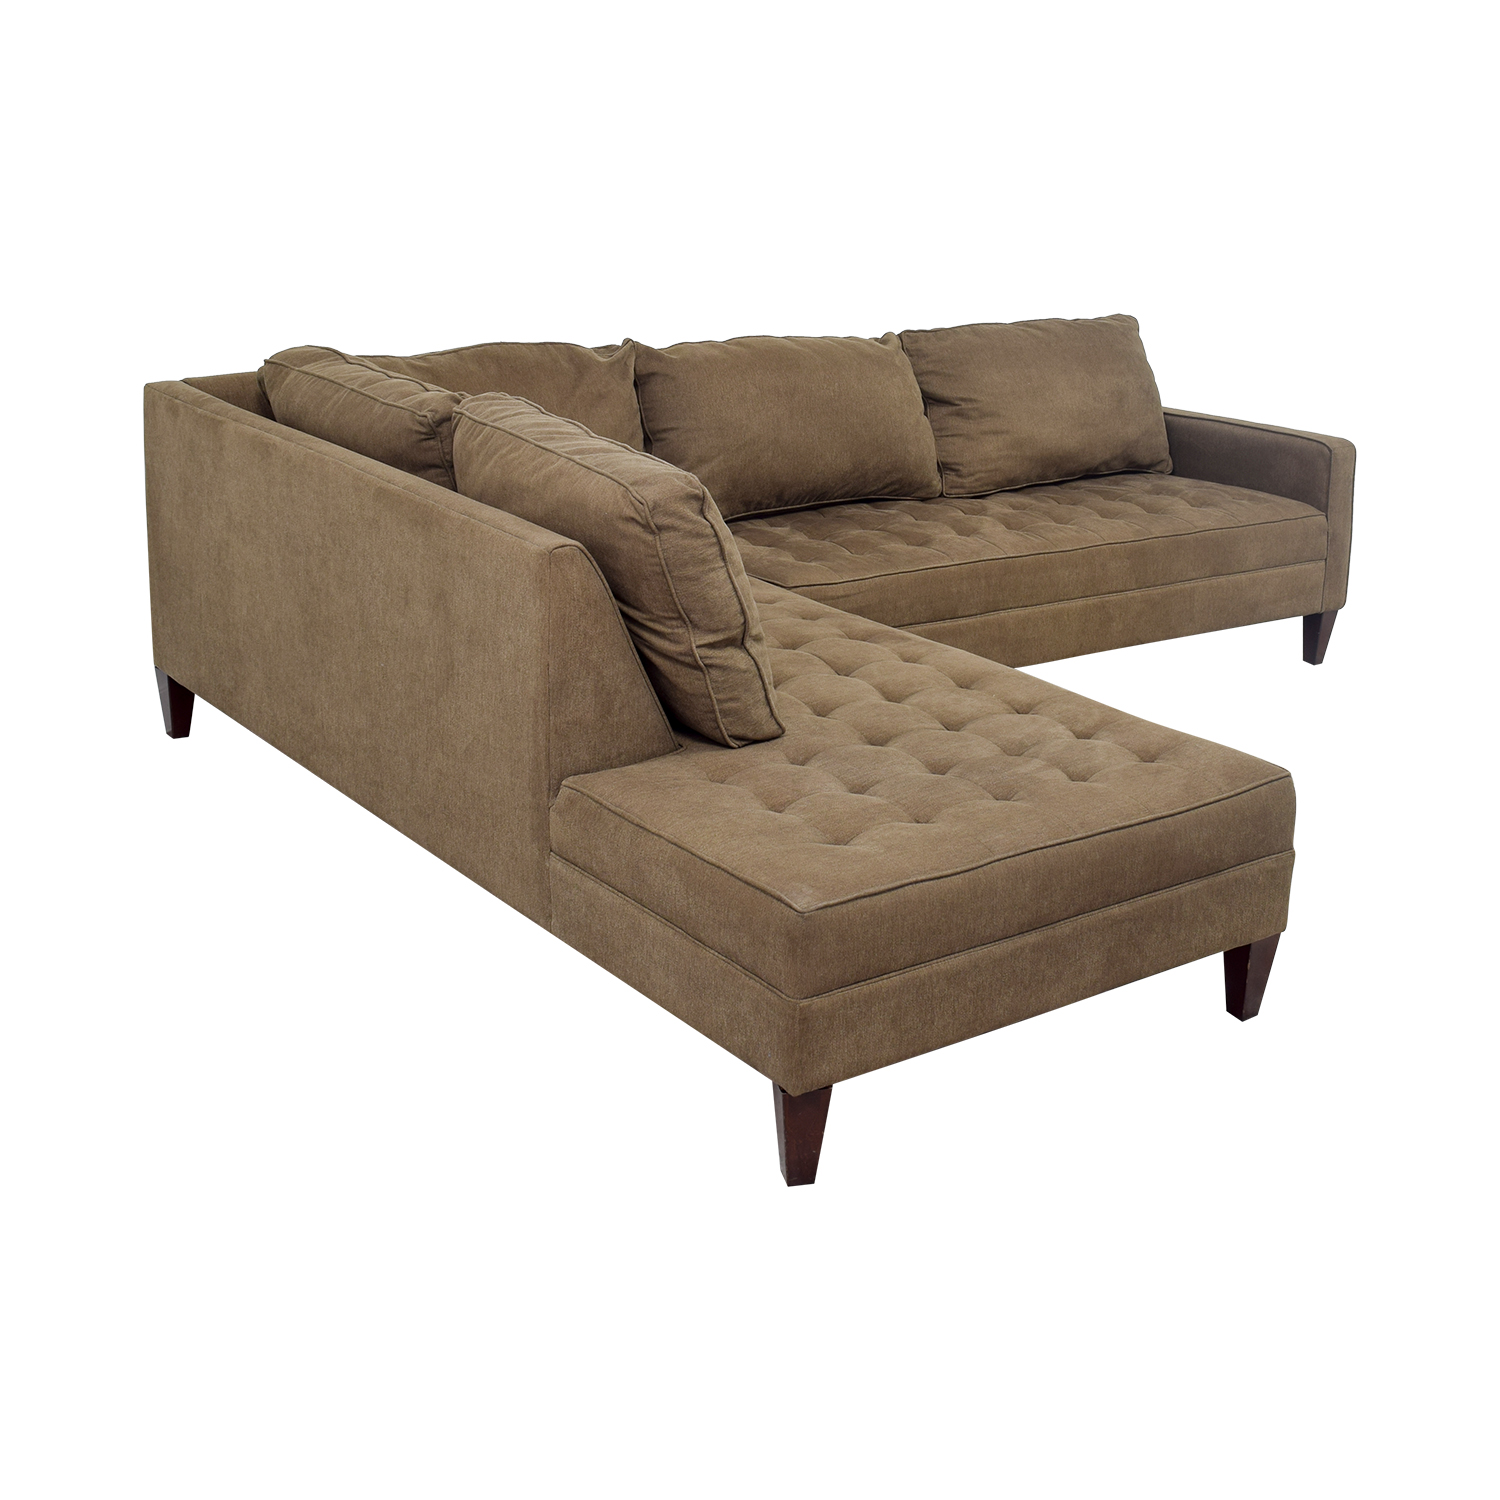 chaise sectional sectionals threshold in ashley belcastel piece height width trim fabric item products gray right with